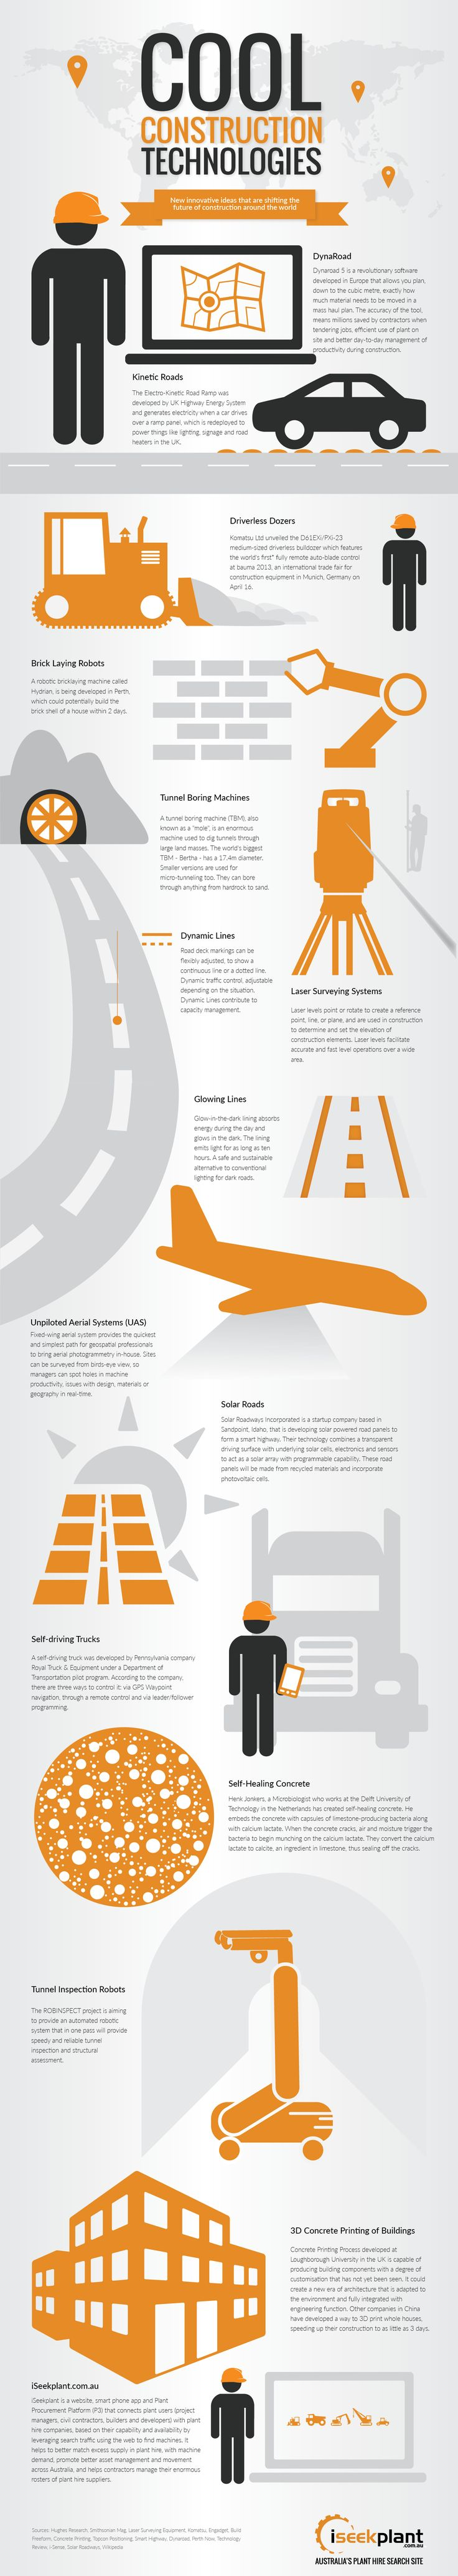 iSeekplant.com.au has researched the globe to bring you the best construction technology ideas in development, that are revolutionizing road, civil and mining construction. These ideas are present in the following infographic.